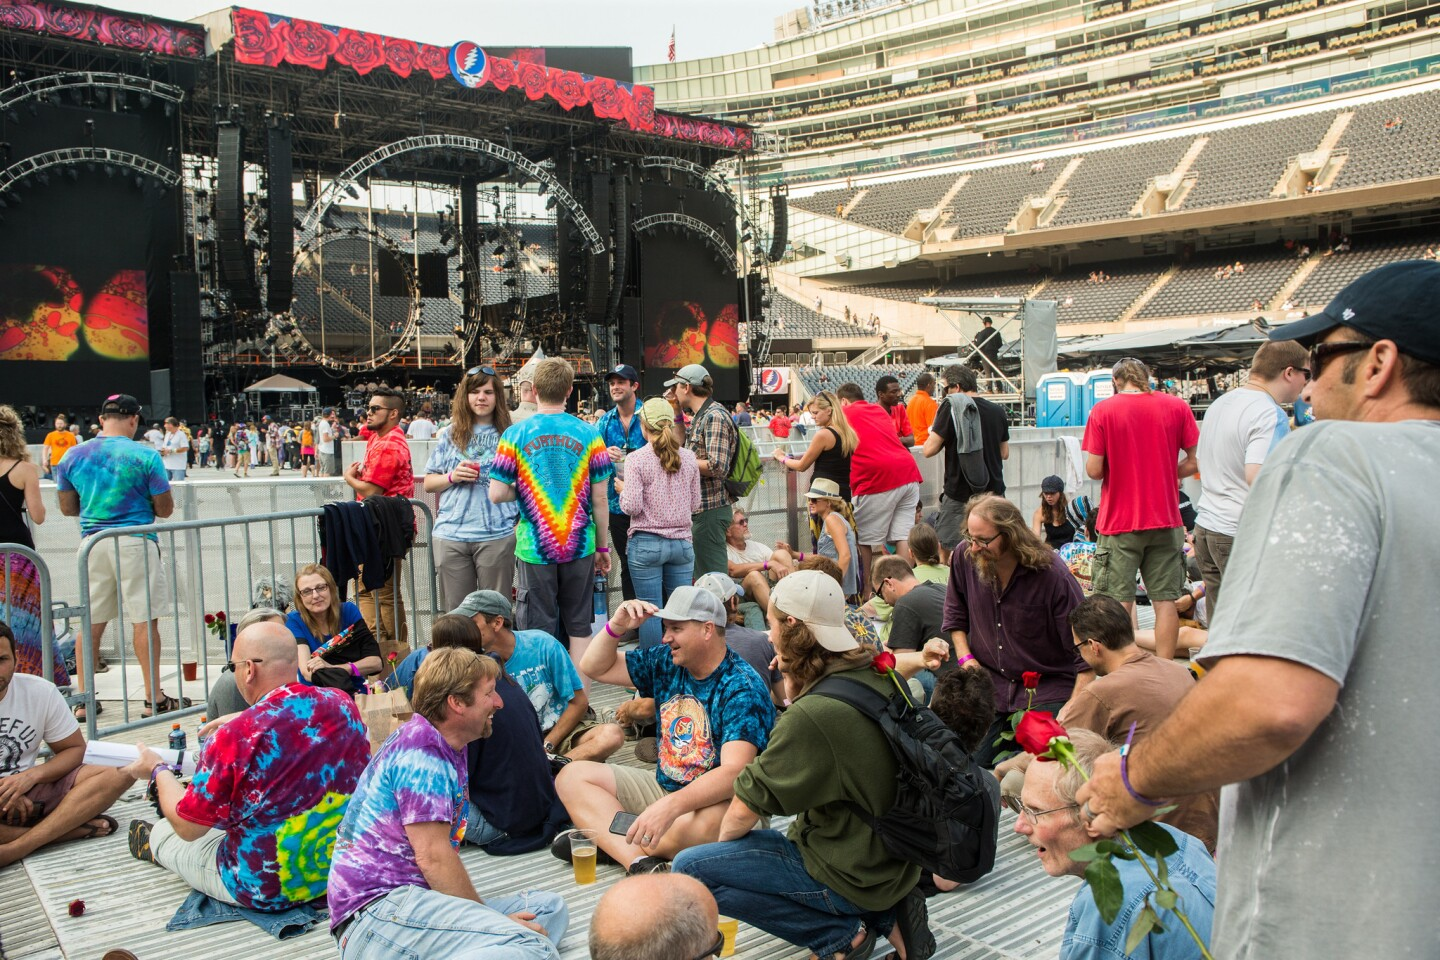 Fans wait by the stage at the Grateful Dead concert at Soldier Field in Chicago on July 3, 2015.